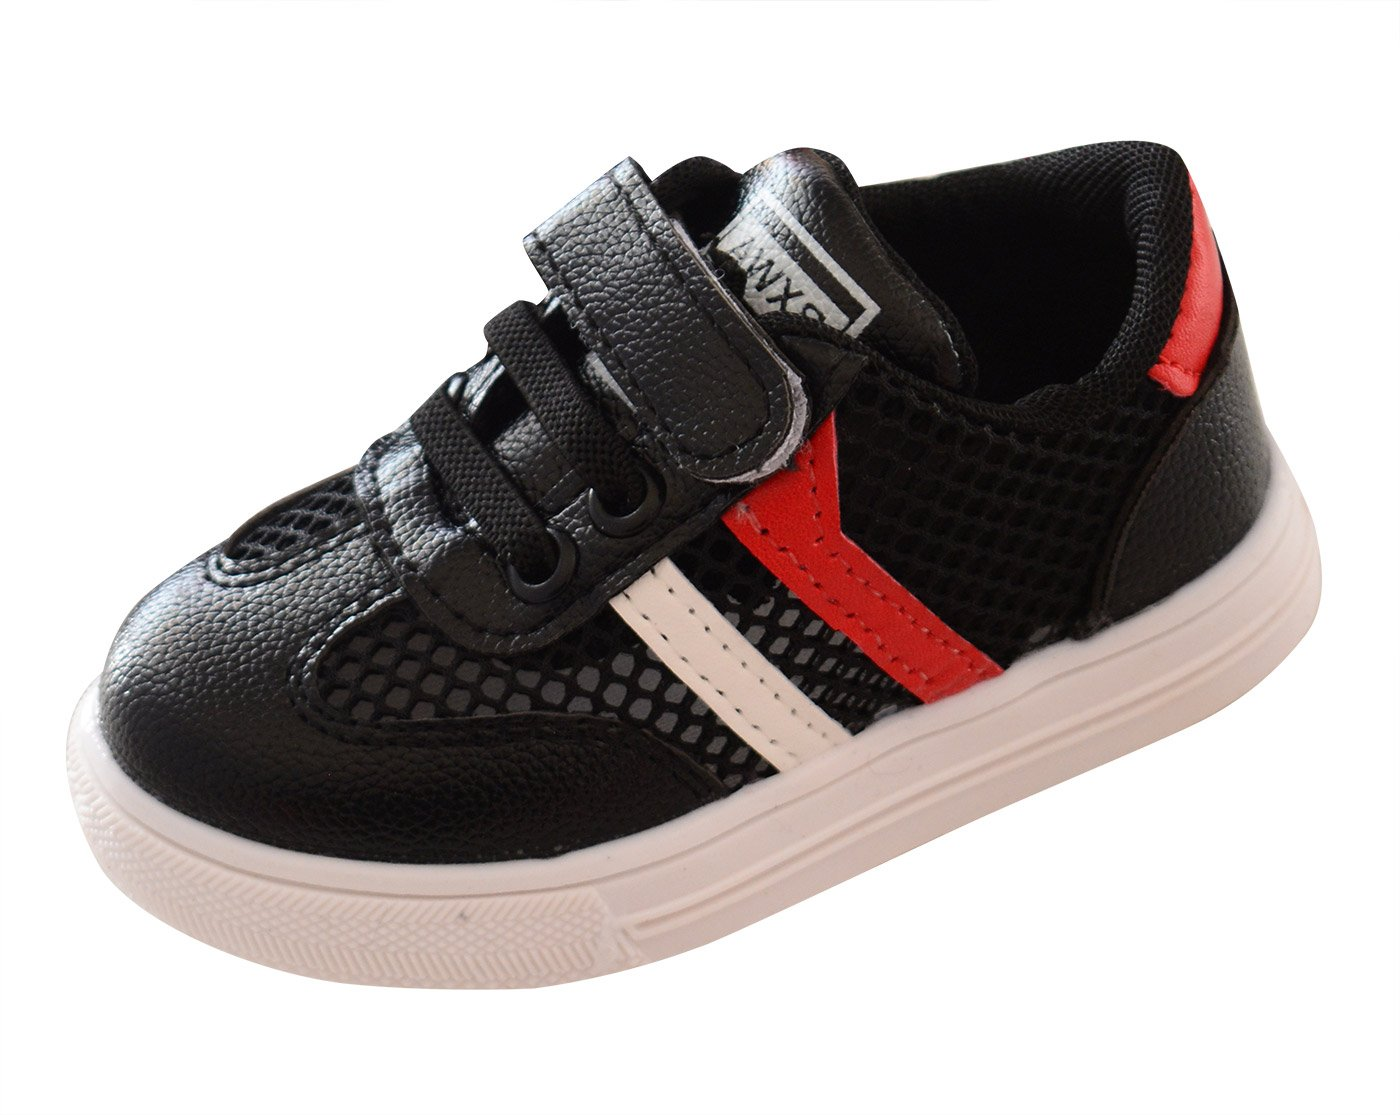 Happy Cherry Sport Shoes Casual Cute Sneakers Soft Crib Shoes for Baby Kids Children for Summer Autumn Black 7.5 M